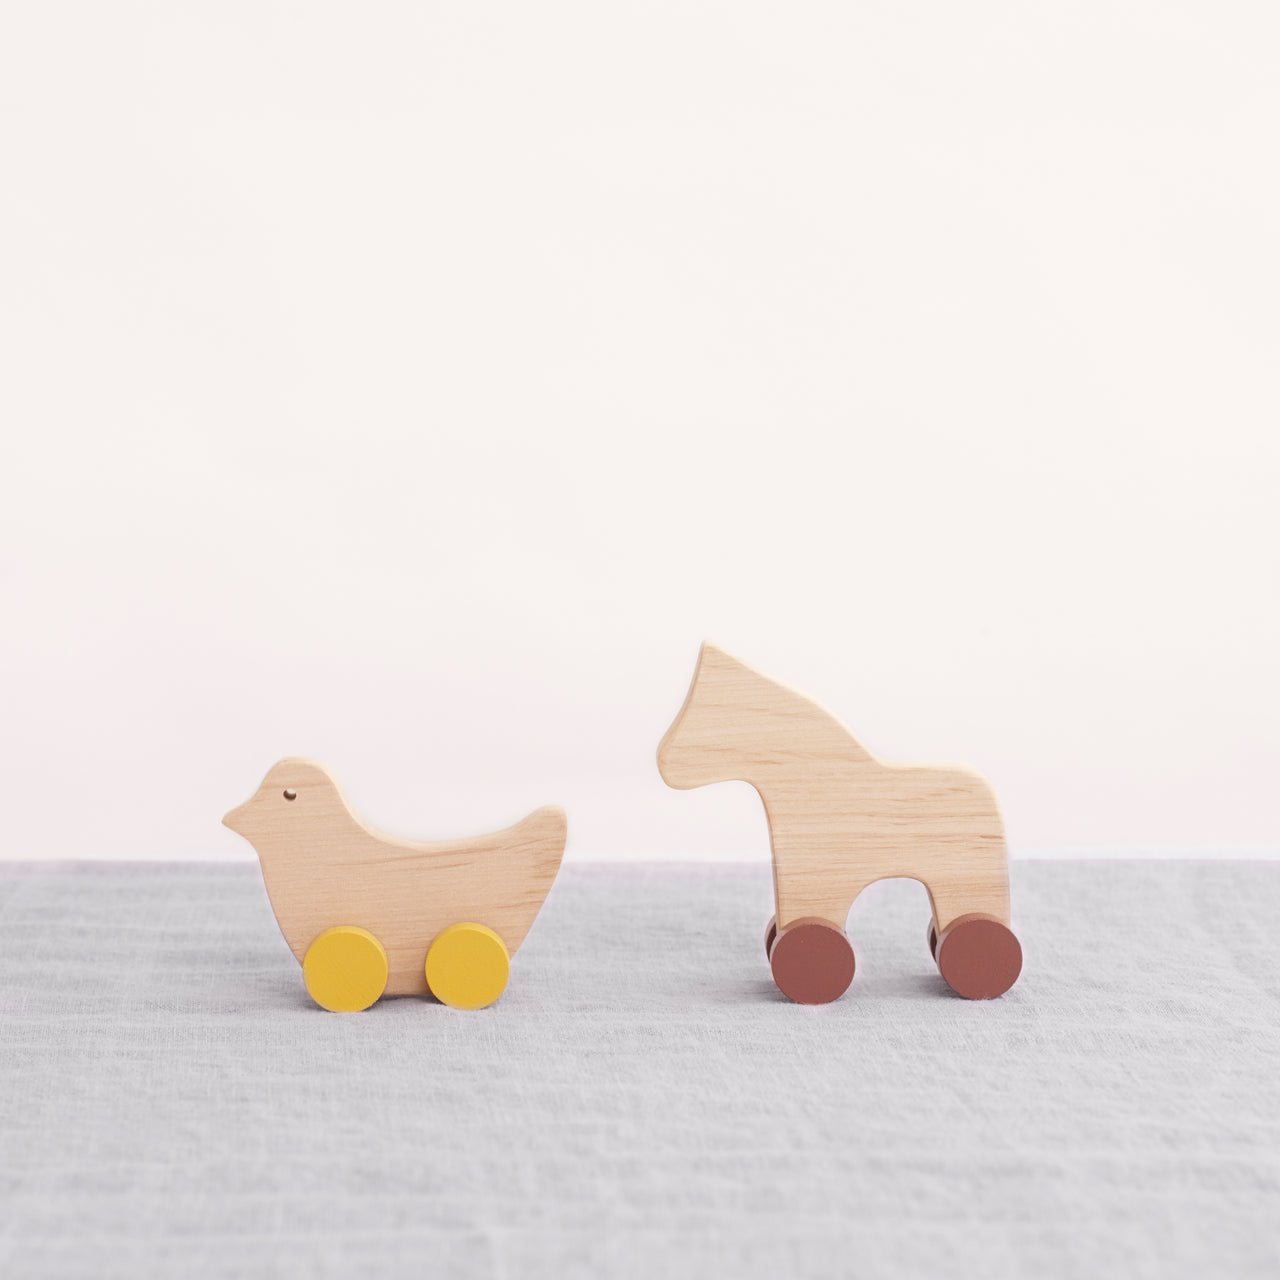 Pinch Toys - Wooden Toys - Horse and Bird - Eco Toys - Organic Toys - Wooden Love - Natural Home - Childhood - Wooden Toys - Nordic Toys - Handmade Toys - Handcrafted